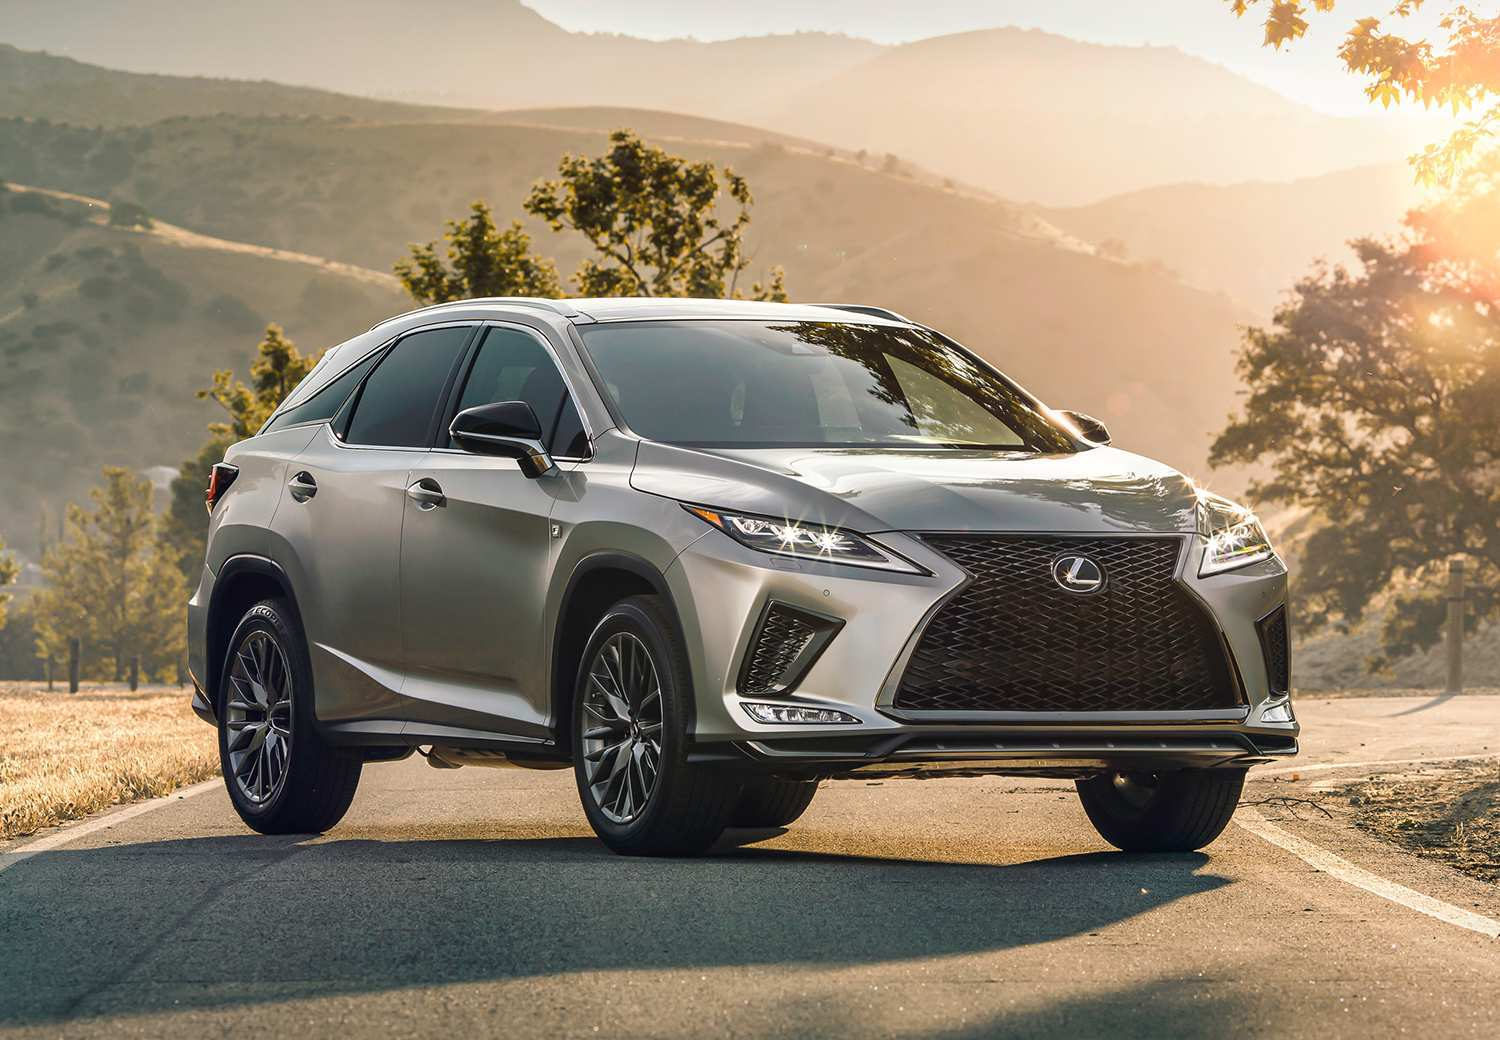 70 The Best Lexus Rx 450H Facelift 2020 Exterior